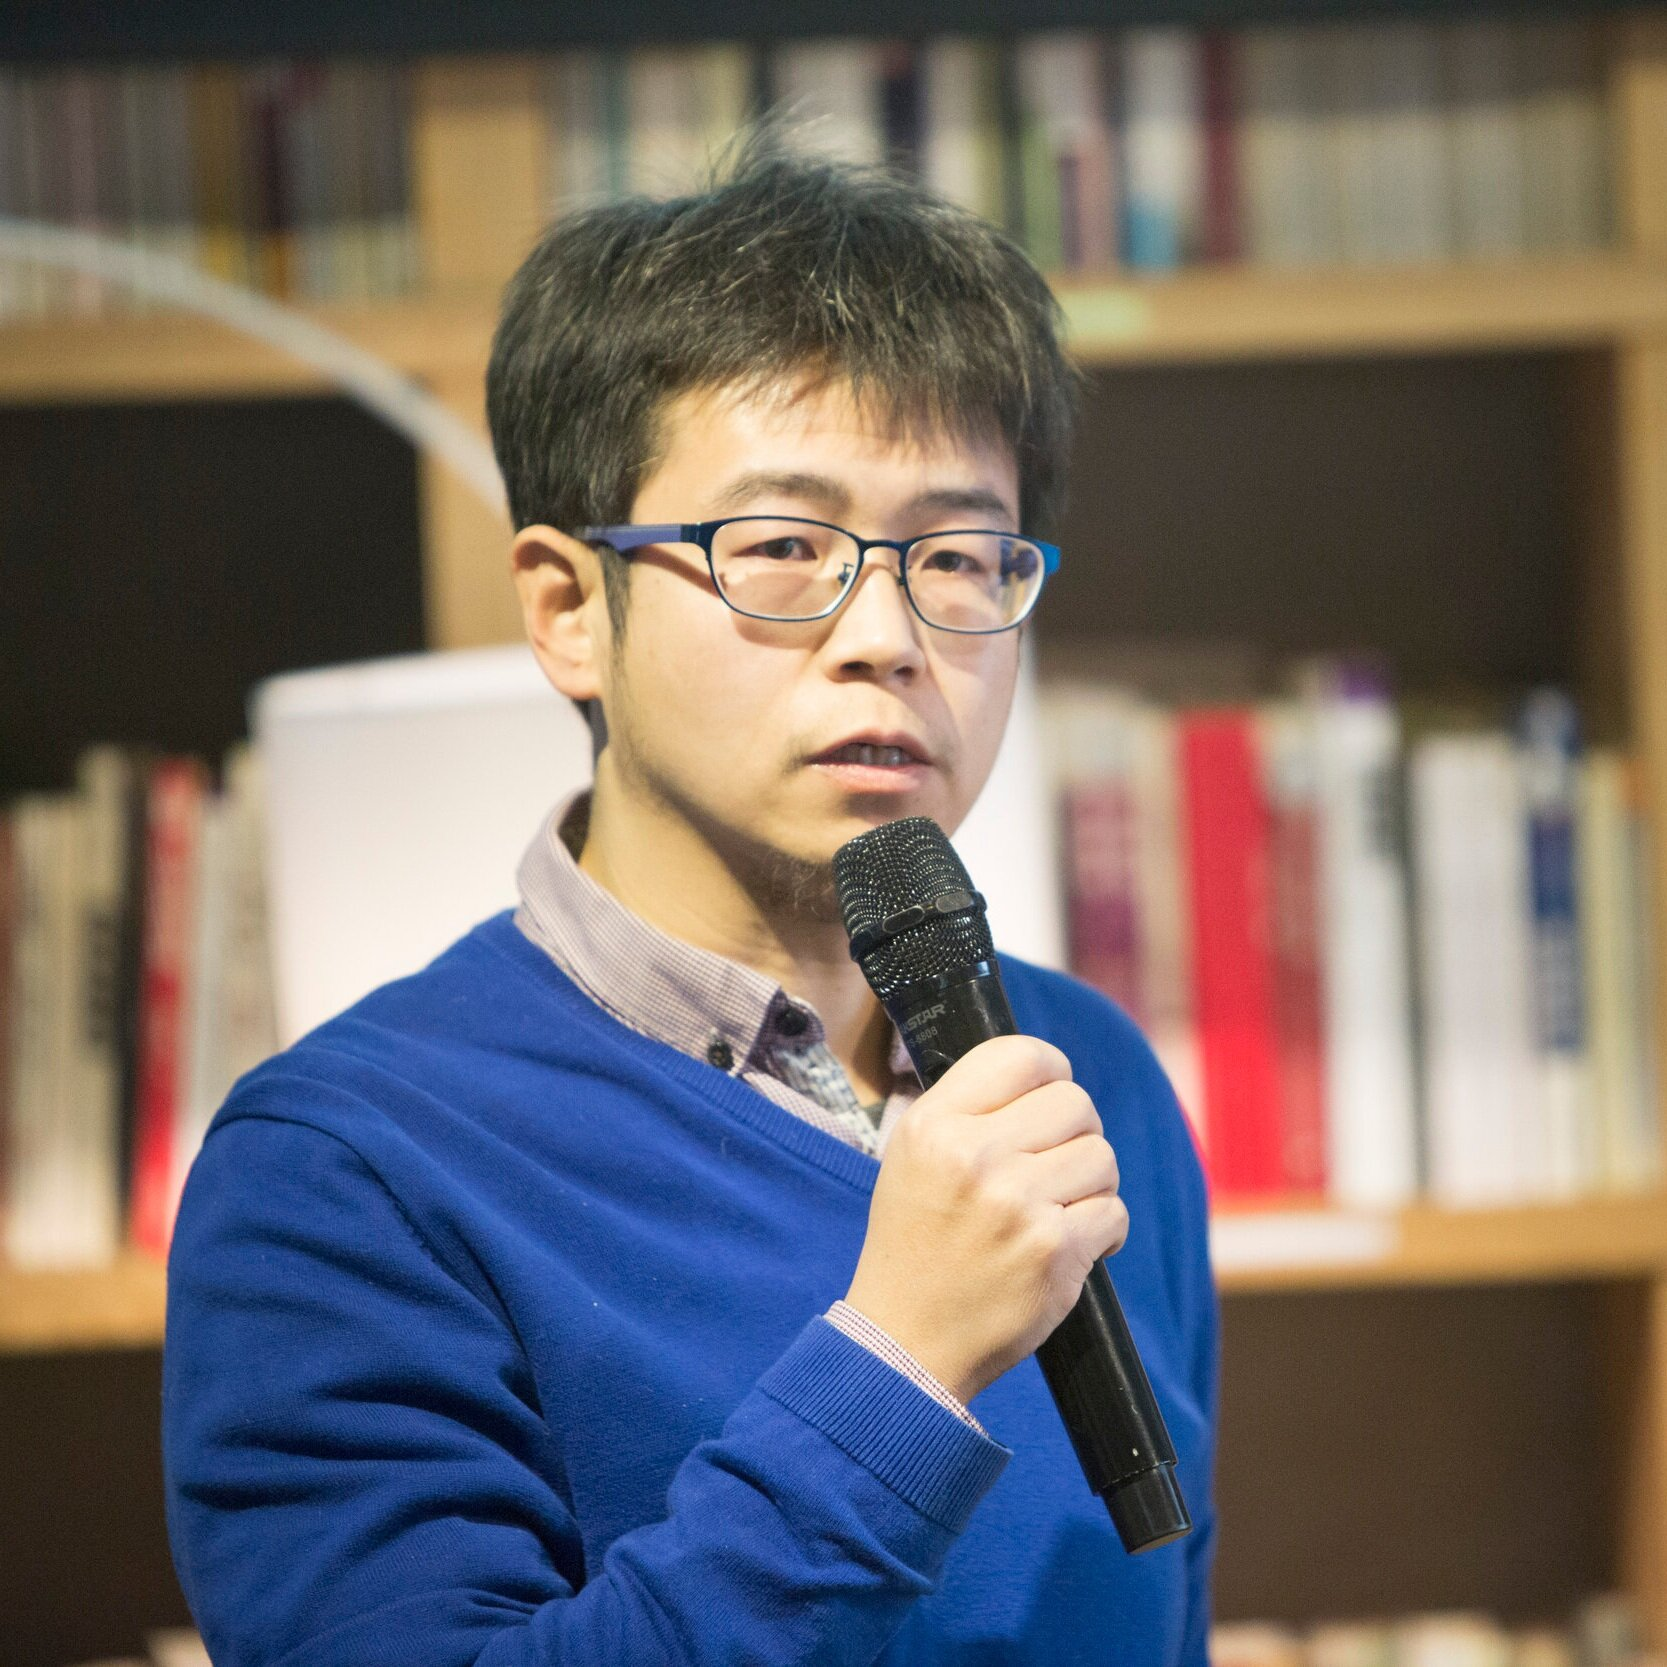 Mao Da  (China) the director of Toxics-Free China and the policy advisor of China Zero Waste Alliance. He holds a PhD degree in environmental history. Over the past 10 years, he has been actively working with different environmental NGOs for their efforts to reduce pollutions of wastes and toxic chemicals, and promote environmental health. In the academic area, he has published a book on the history of waste disposal in the ocean in the United States and finished a post-doctorate report on the history of social debate on dioxin. Currently his work focuses more on the promotion of zero waste strategy, sound management of chemicals, and plastic pollution prevention.